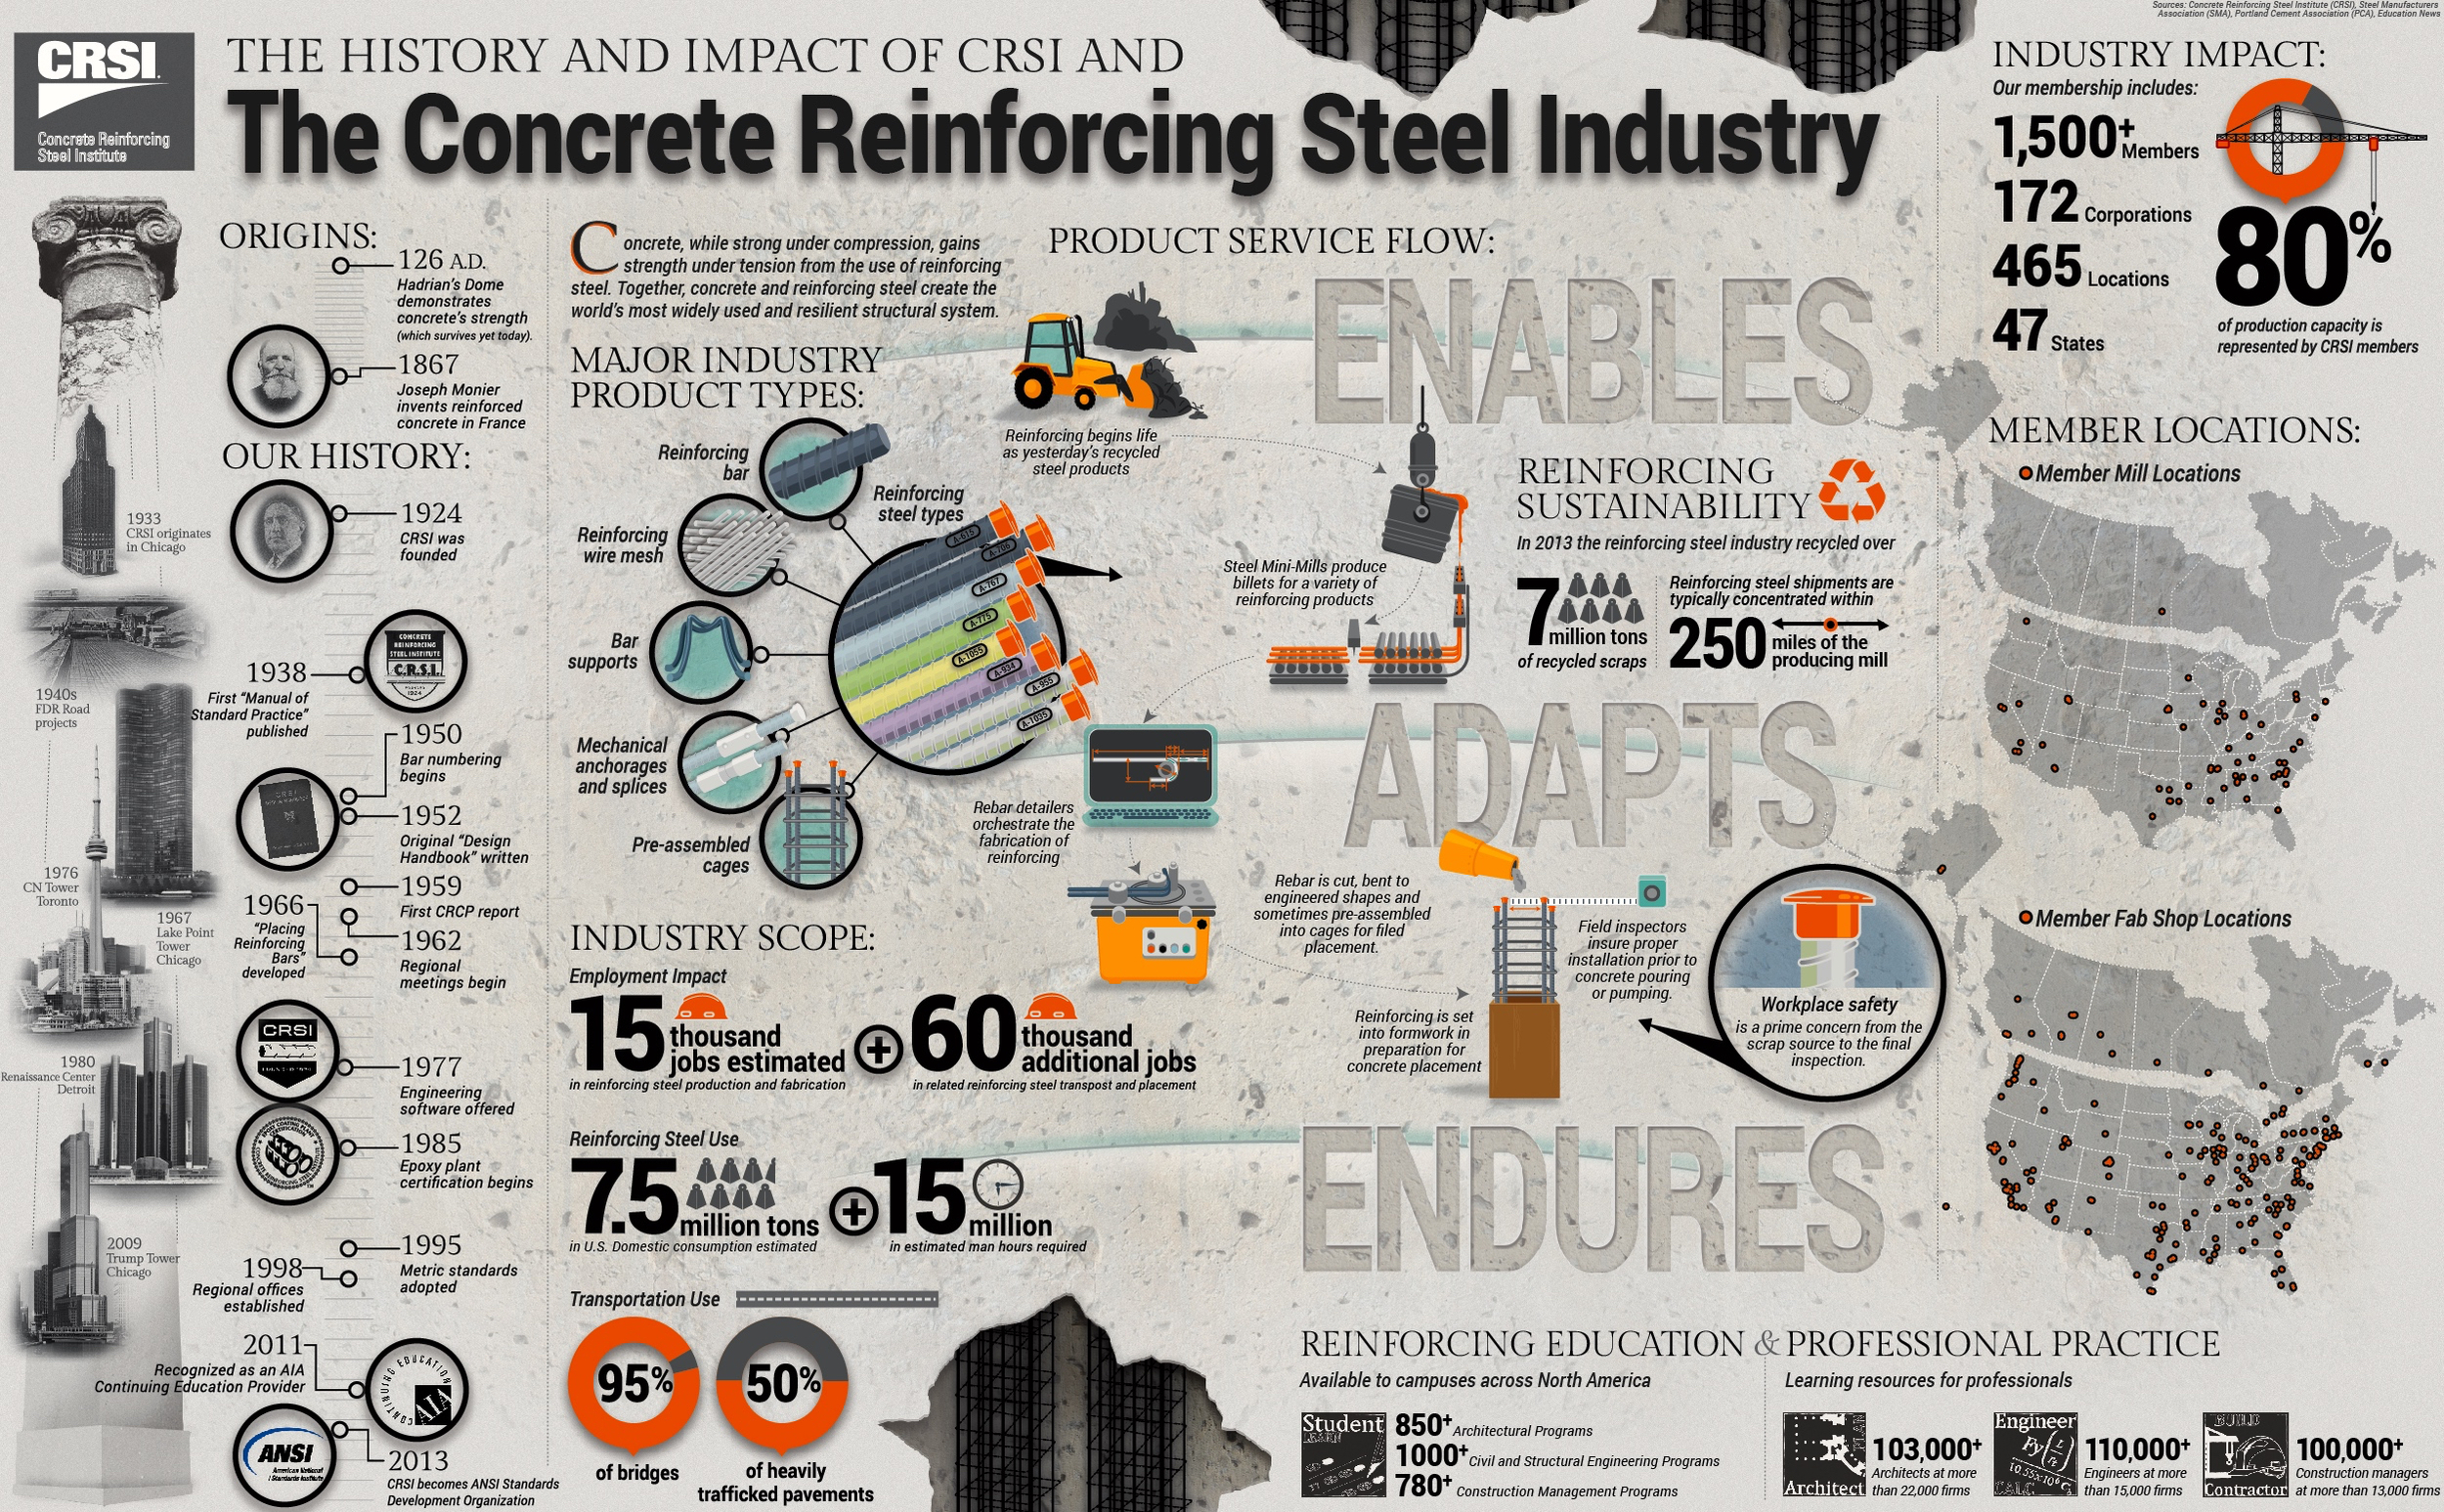 This reinforcing steel industry infographic  has been used very effectively to quickly define a complex industry to media, legislators and political staff.